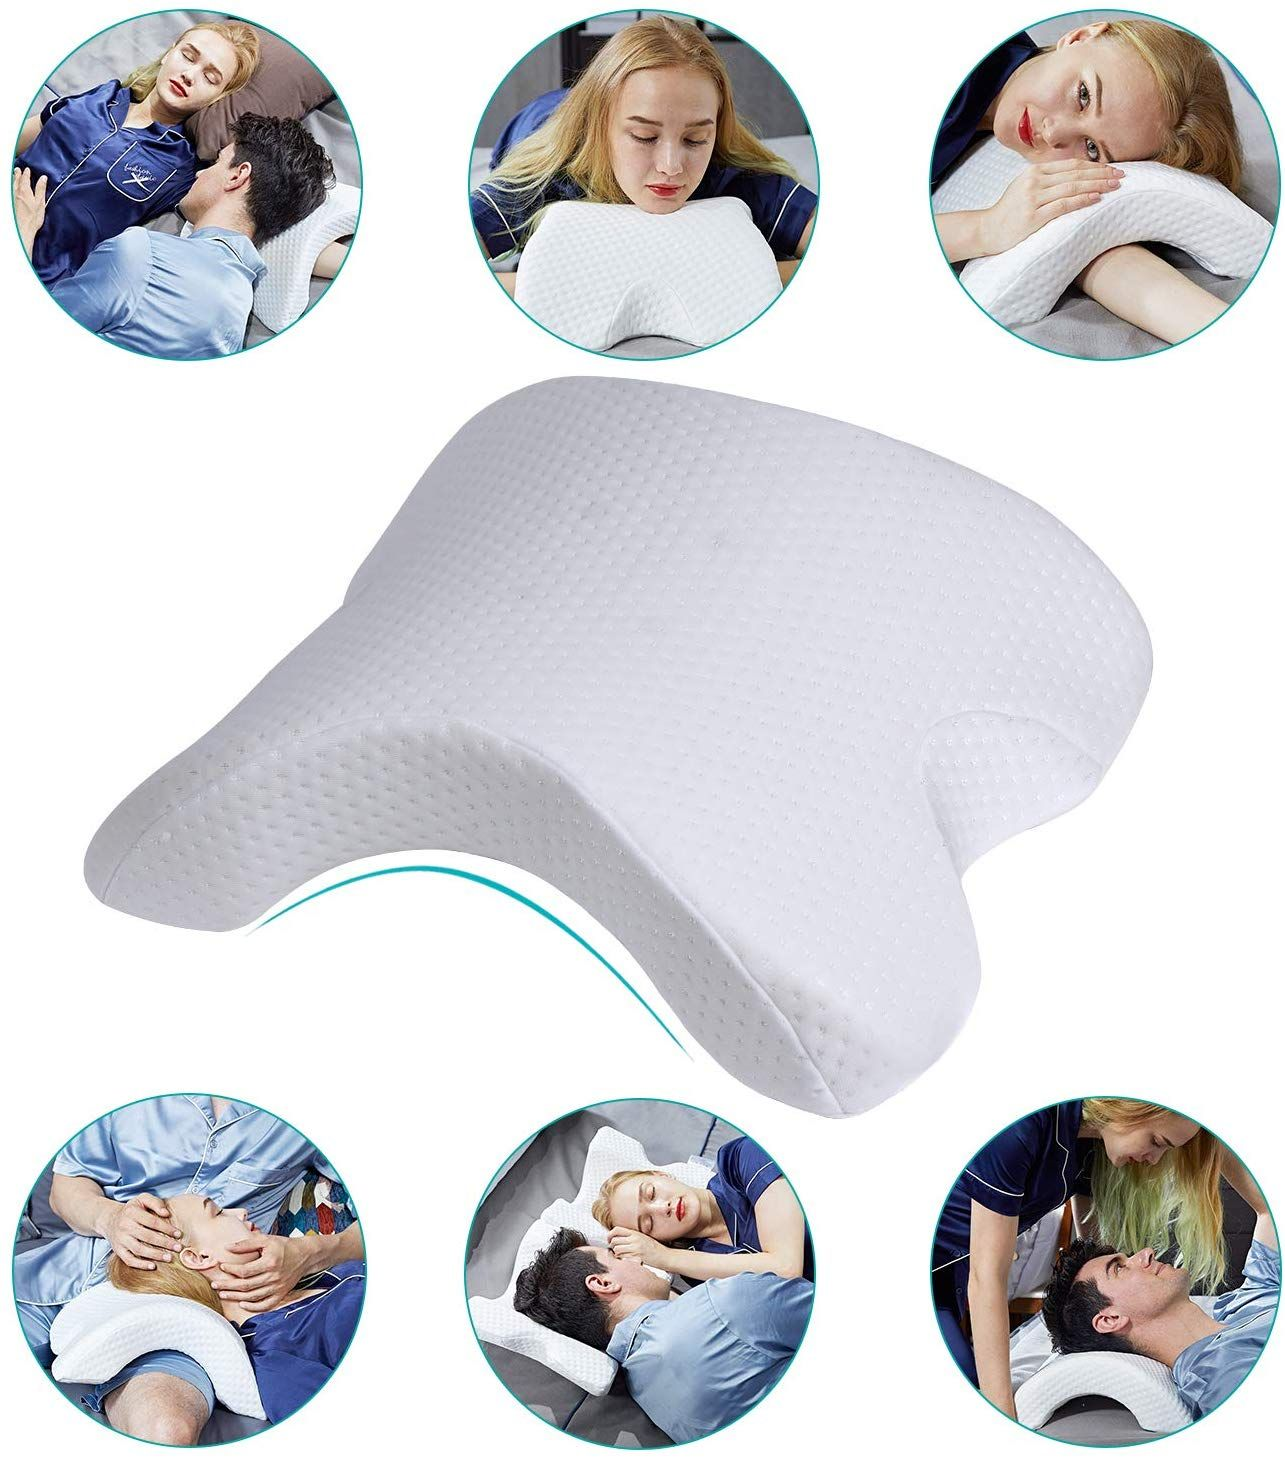 Coodle Pillow: Cuddle Pillow for